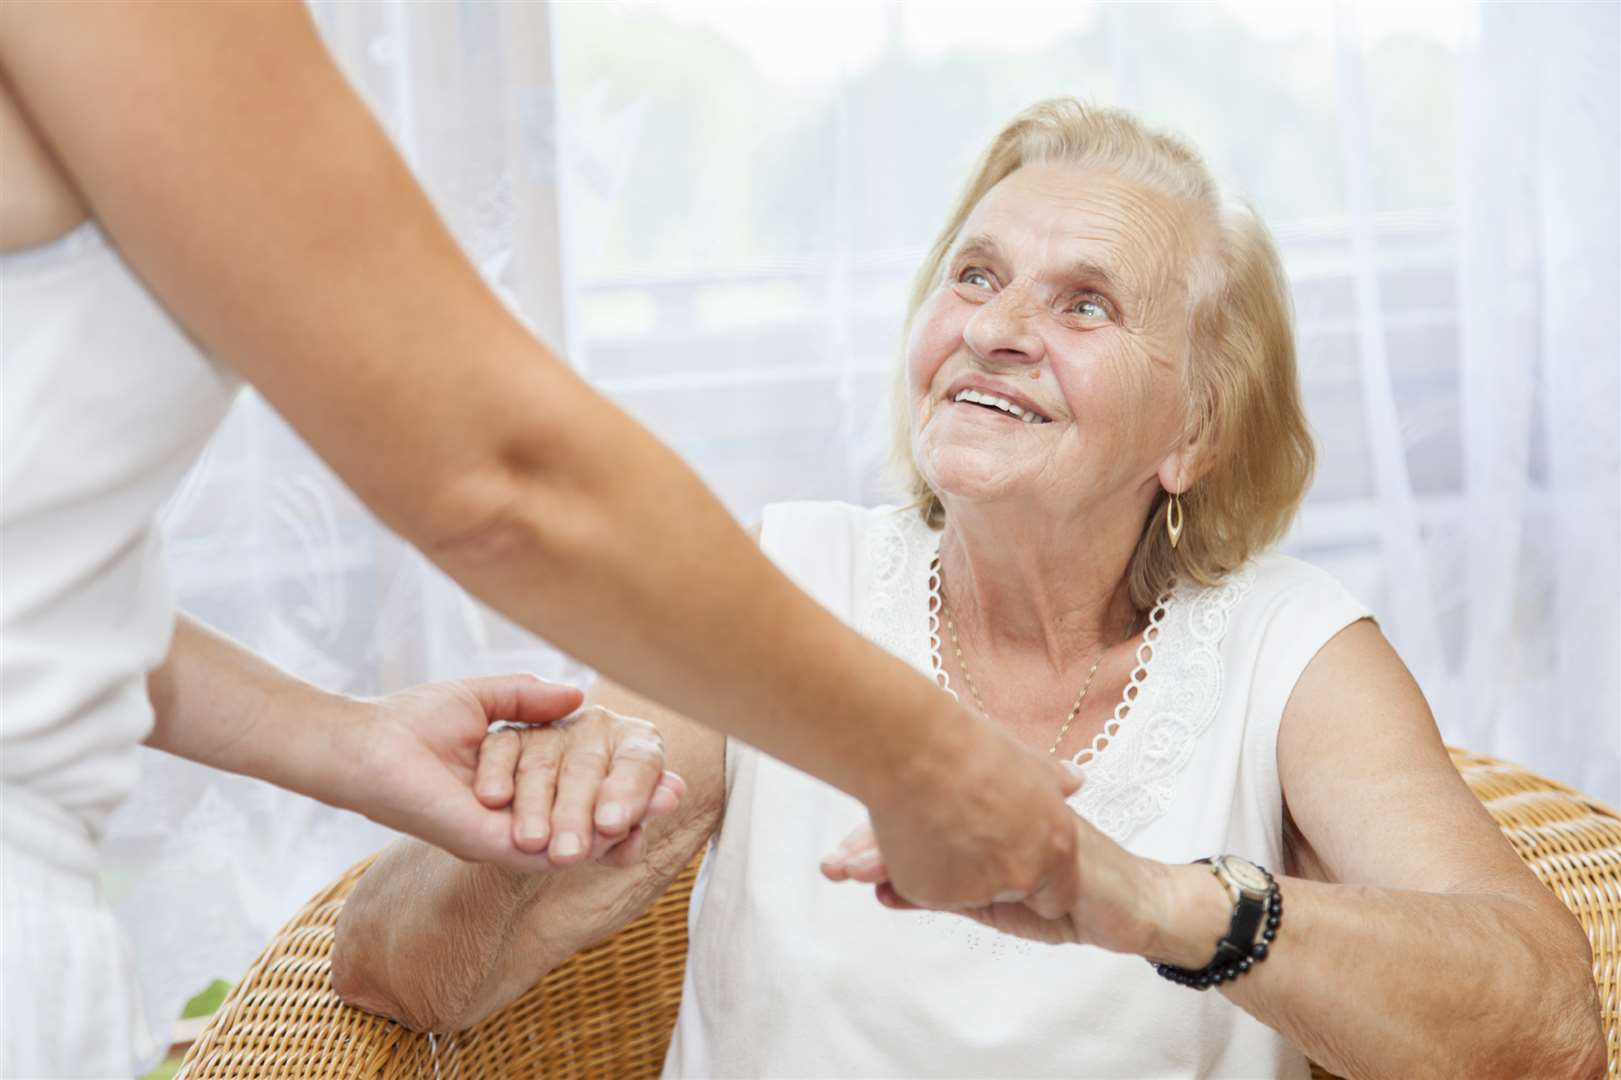 The women worked to improve care for frail patients. Stock image